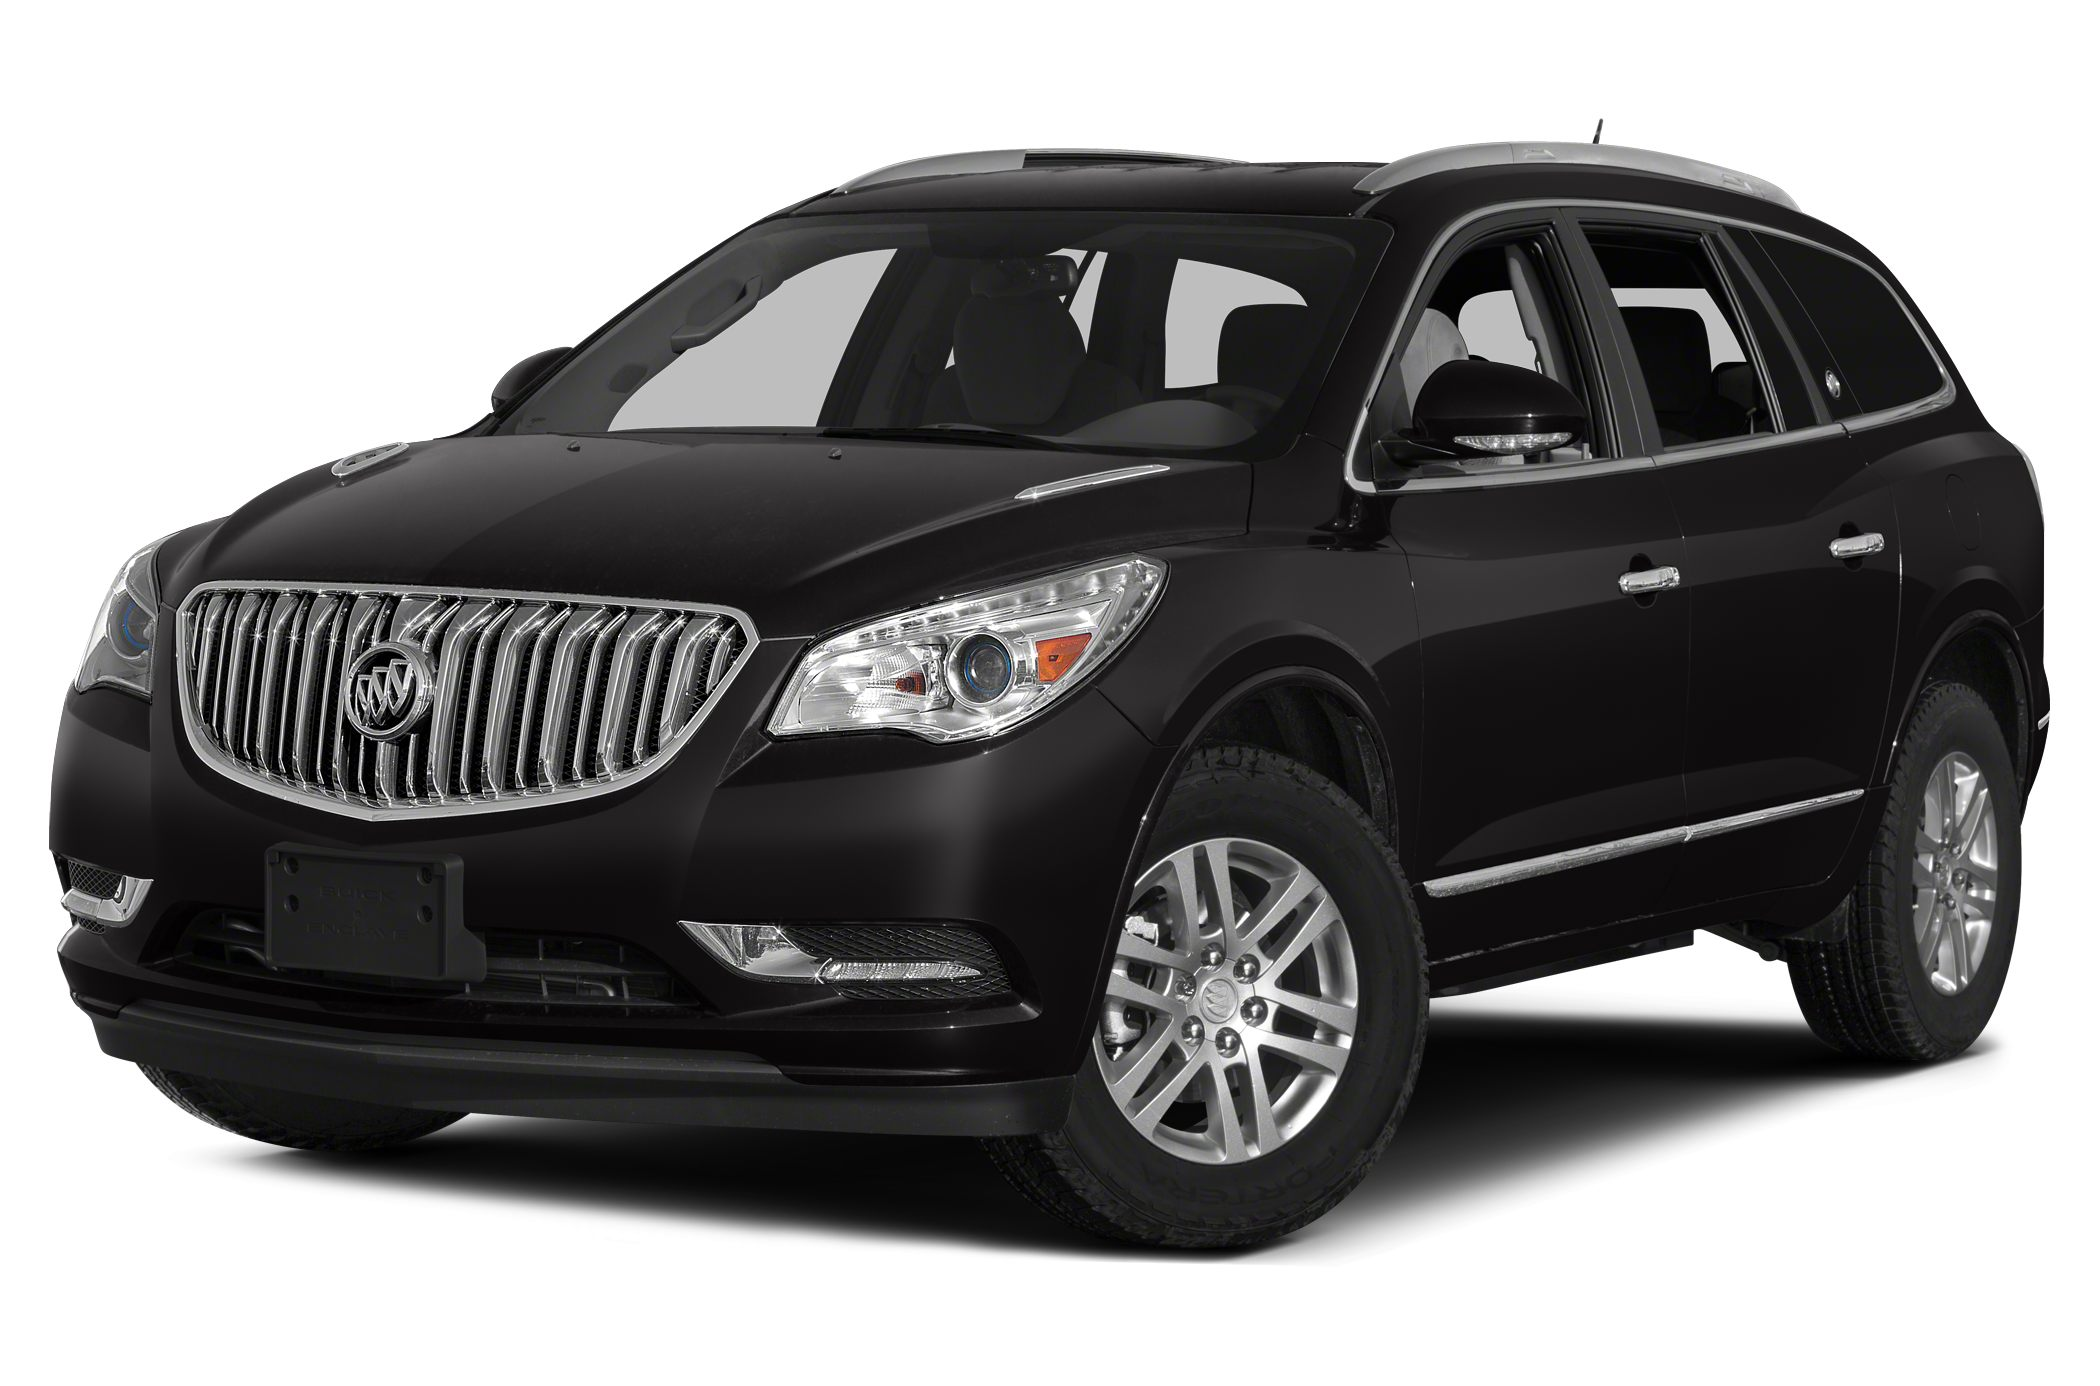 2015 Buick Enclave Leather SUV for sale in Kentland for $44,770 with 0 miles.